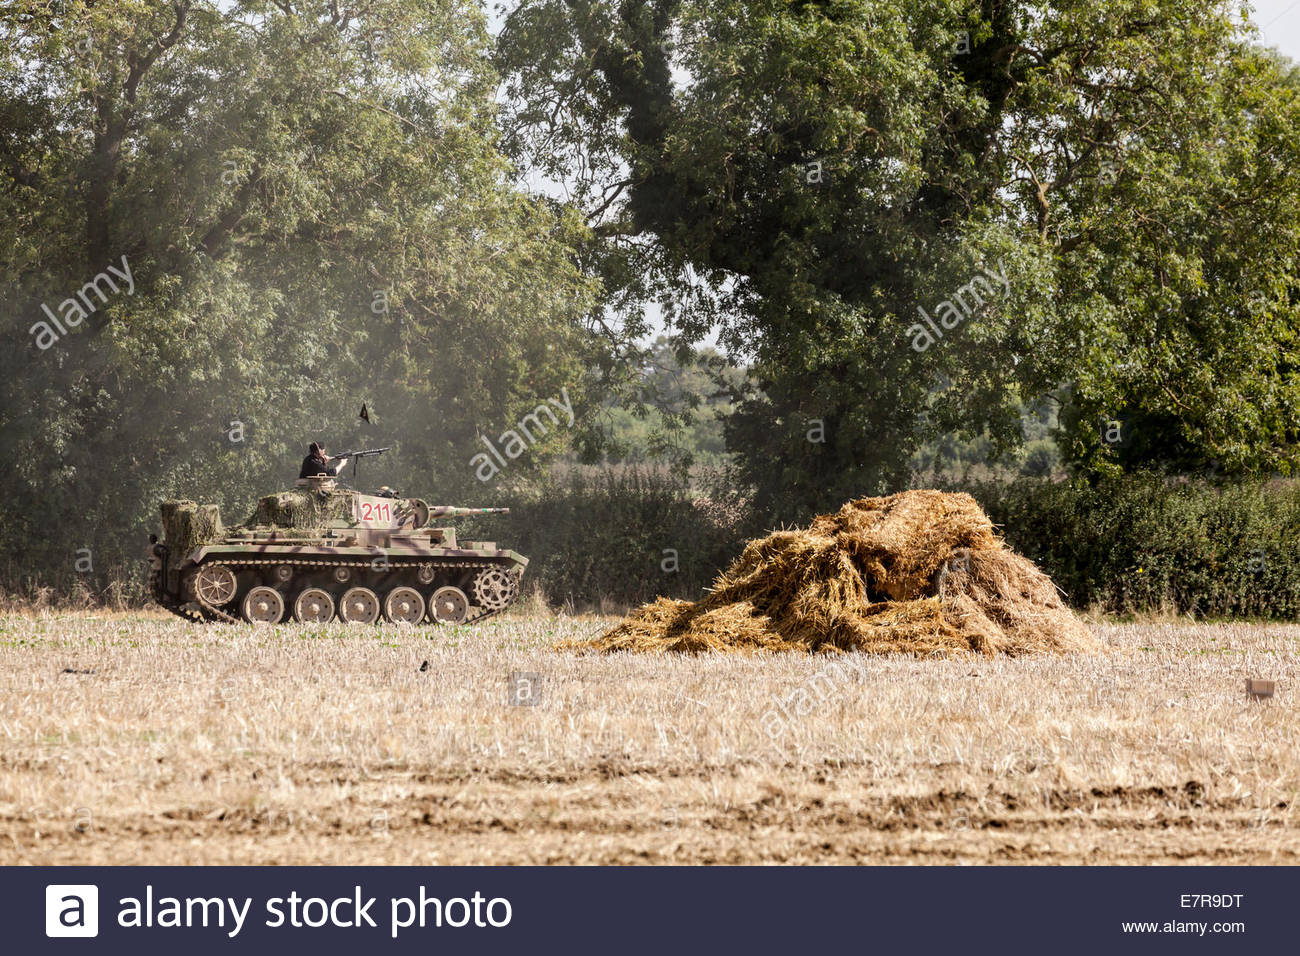 World War Two Re-enactment.  German tank and Panza division soldier - Stock Image